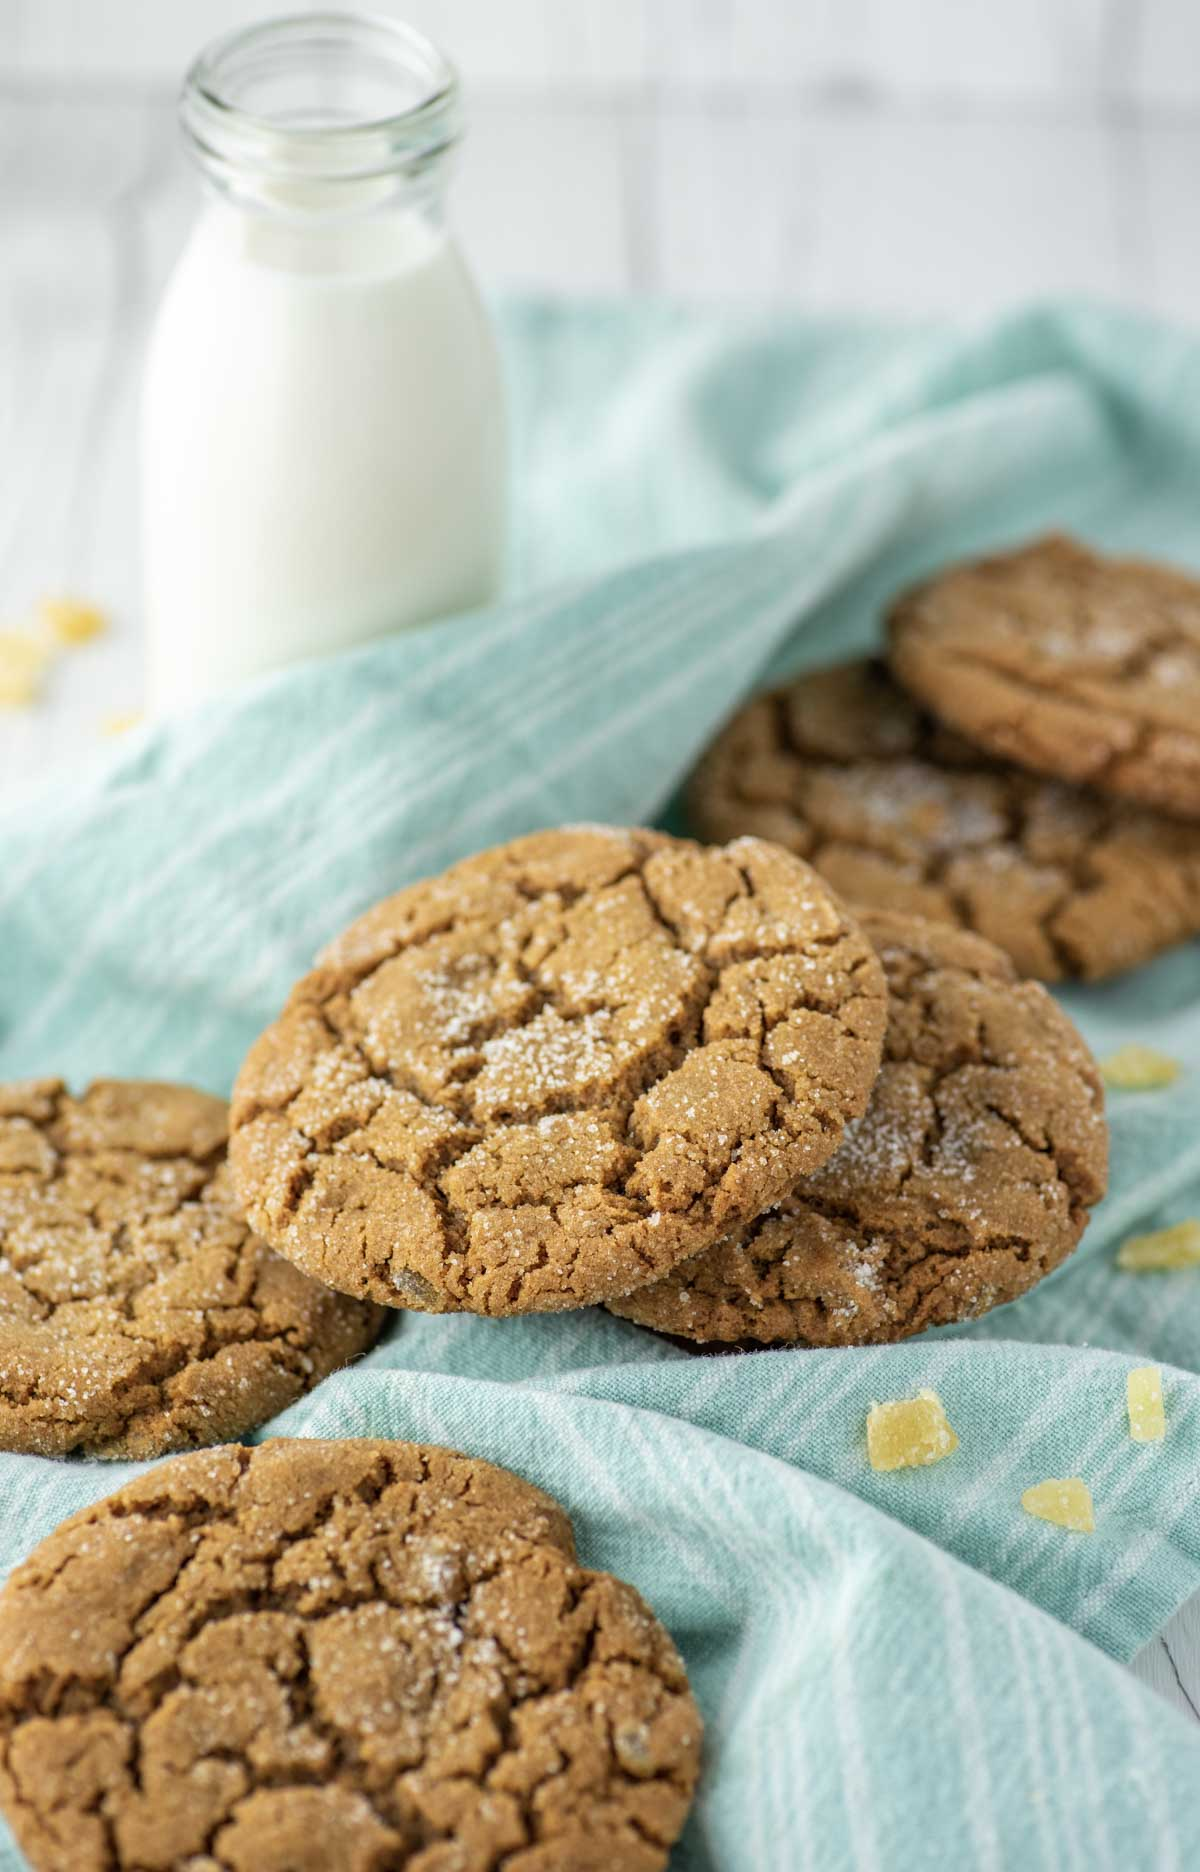 ginger cookies on teal dish towel with glass of milk